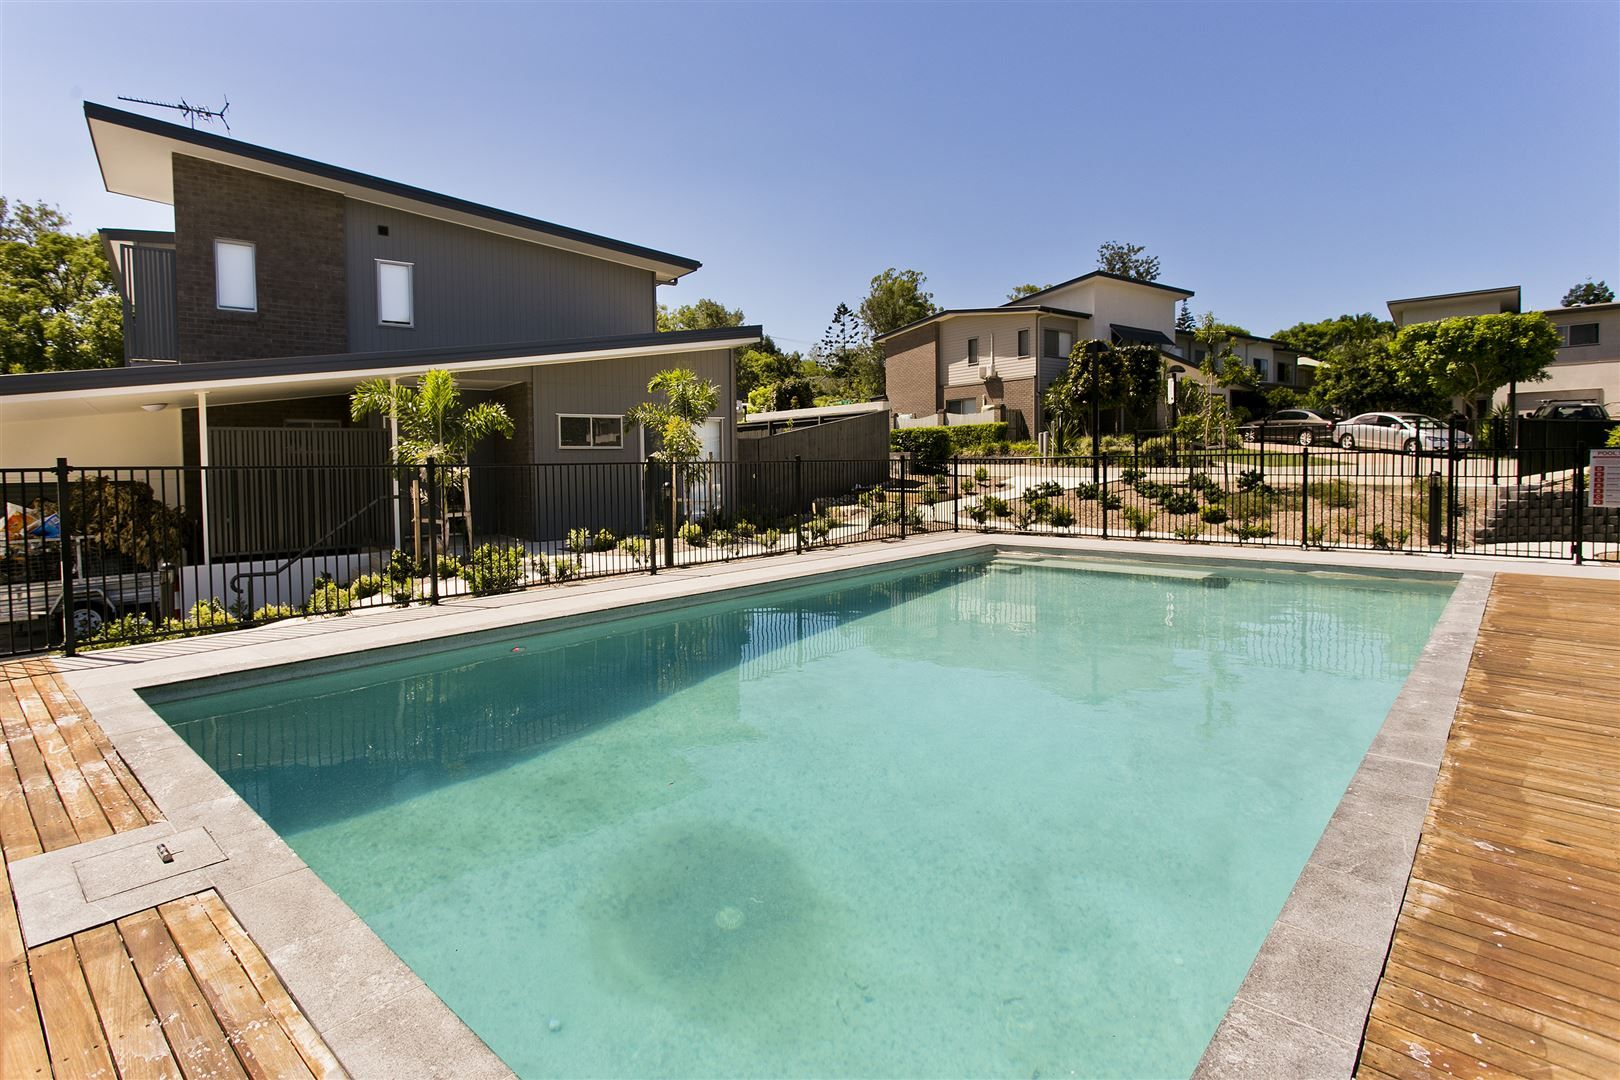 13/9 Houghton Street, Petrie QLD 4502, Image 0